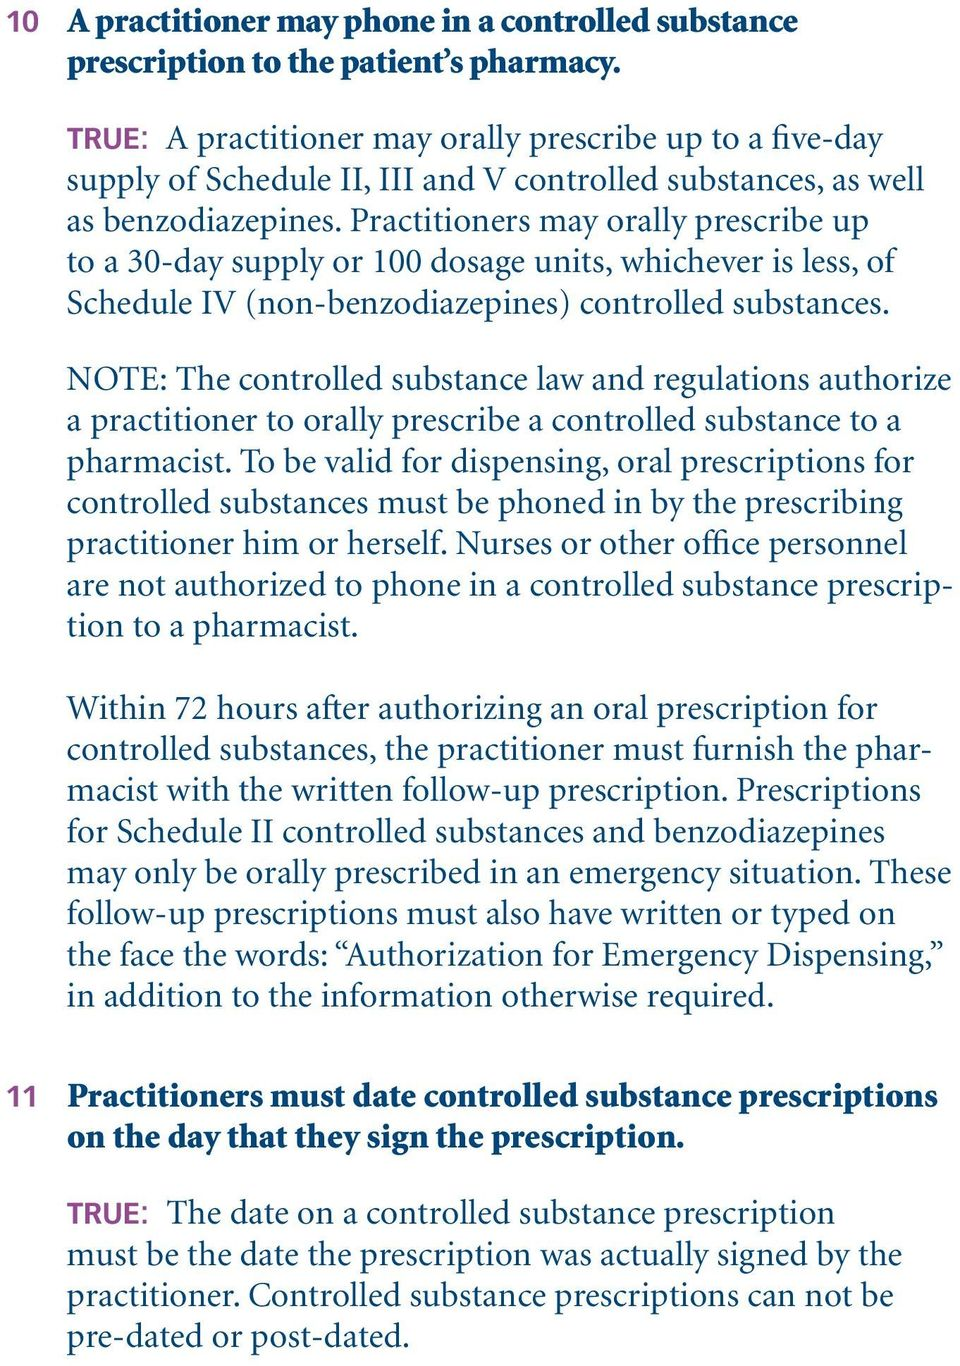 Practitioners may orally prescribe up to a 30-day supply or 100 dosage units, whichever is less, of Schedule IV (non-benzodiazepines) controlled substances.